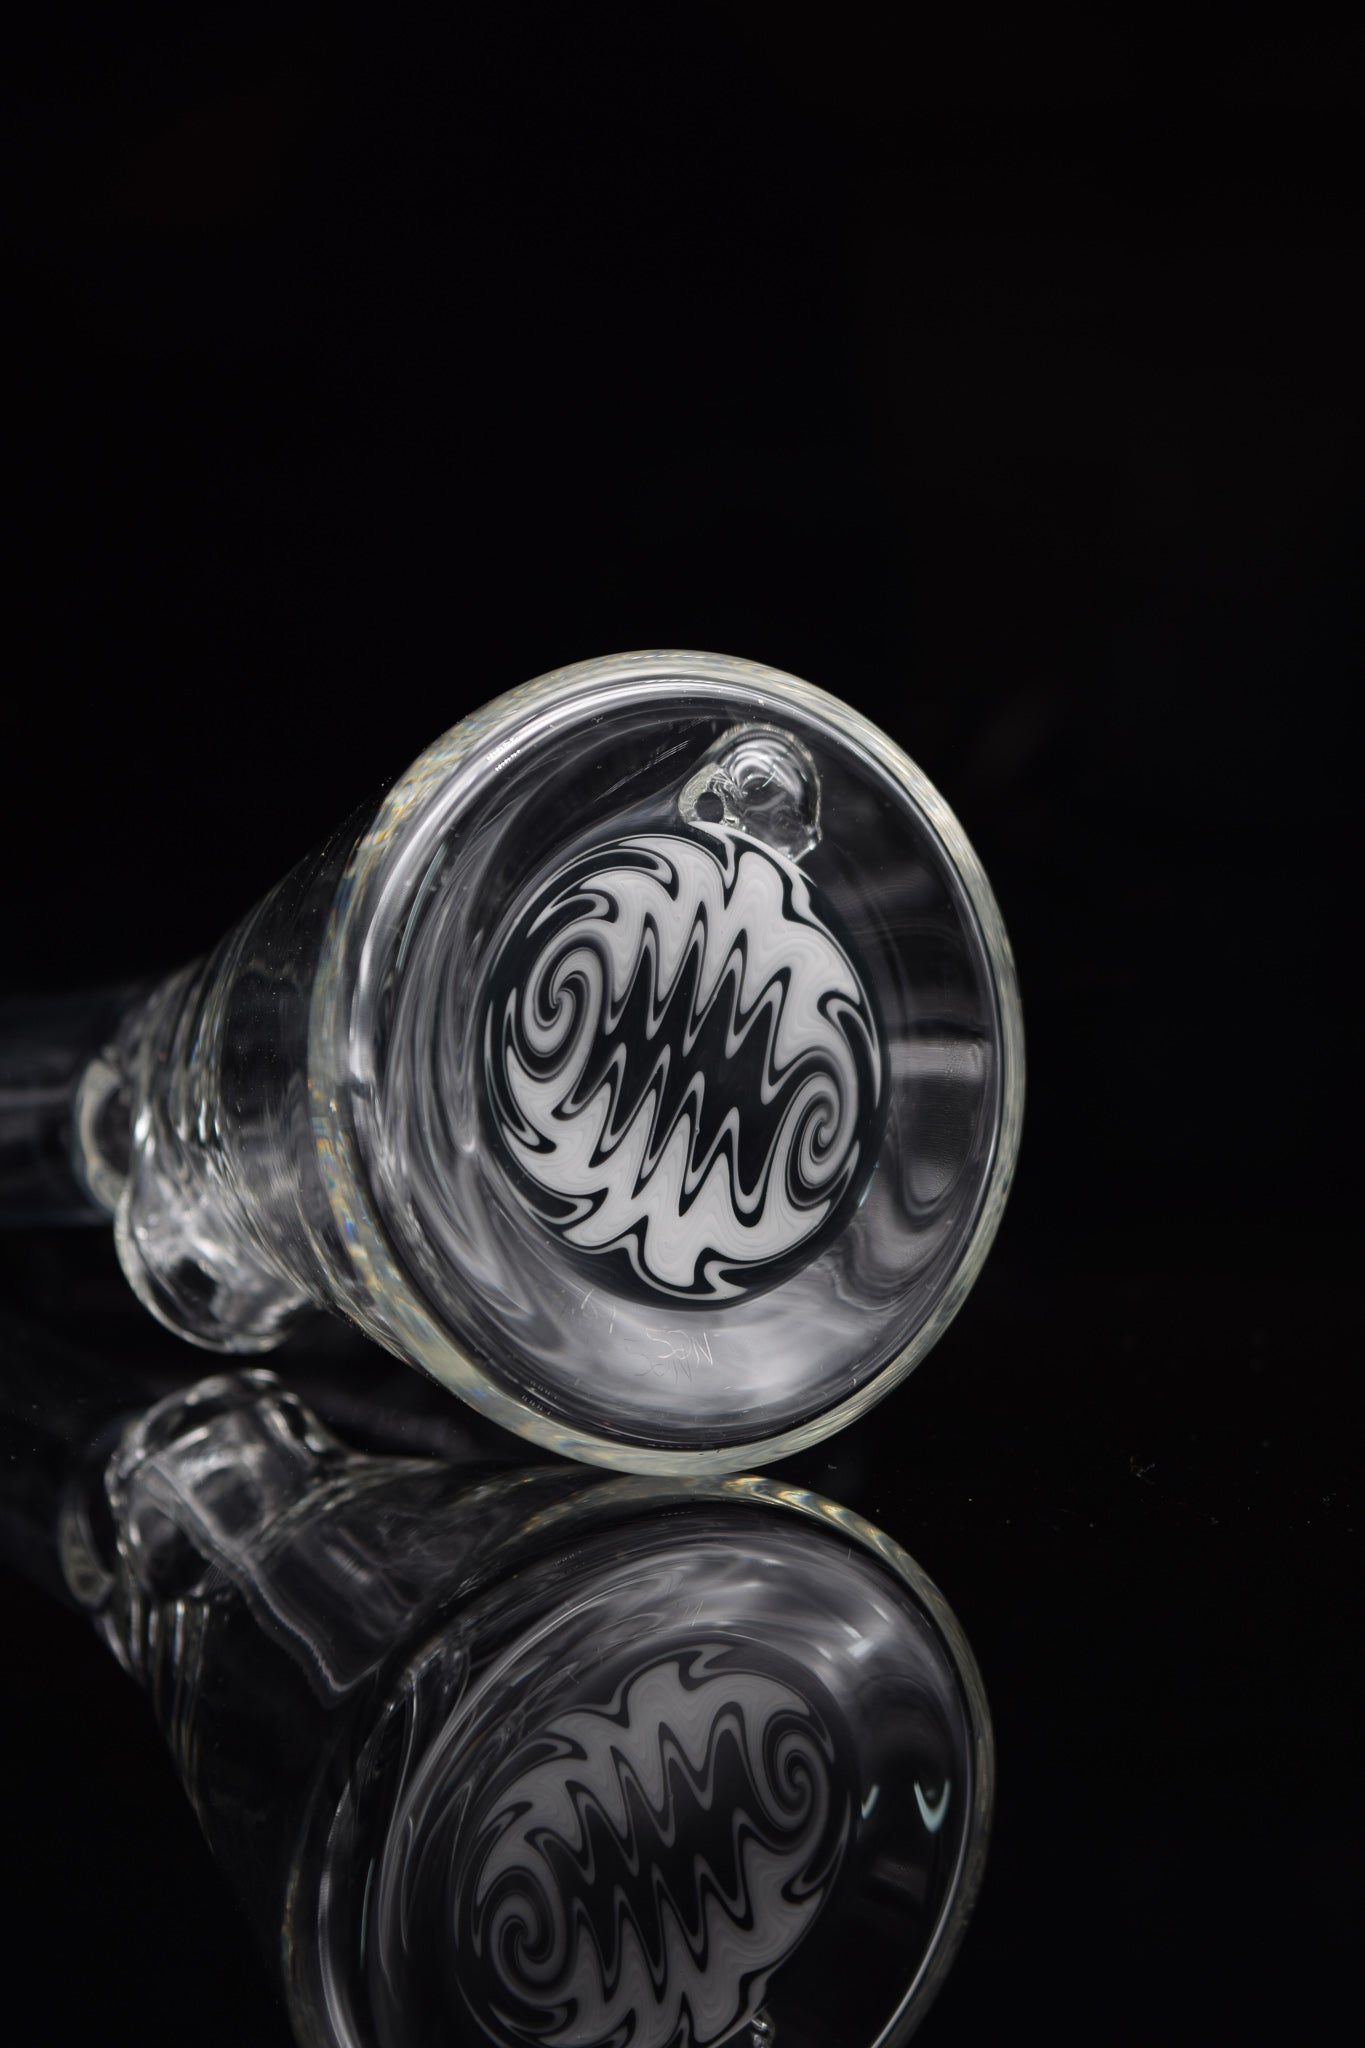 Black & White Choppa by Nes Glass